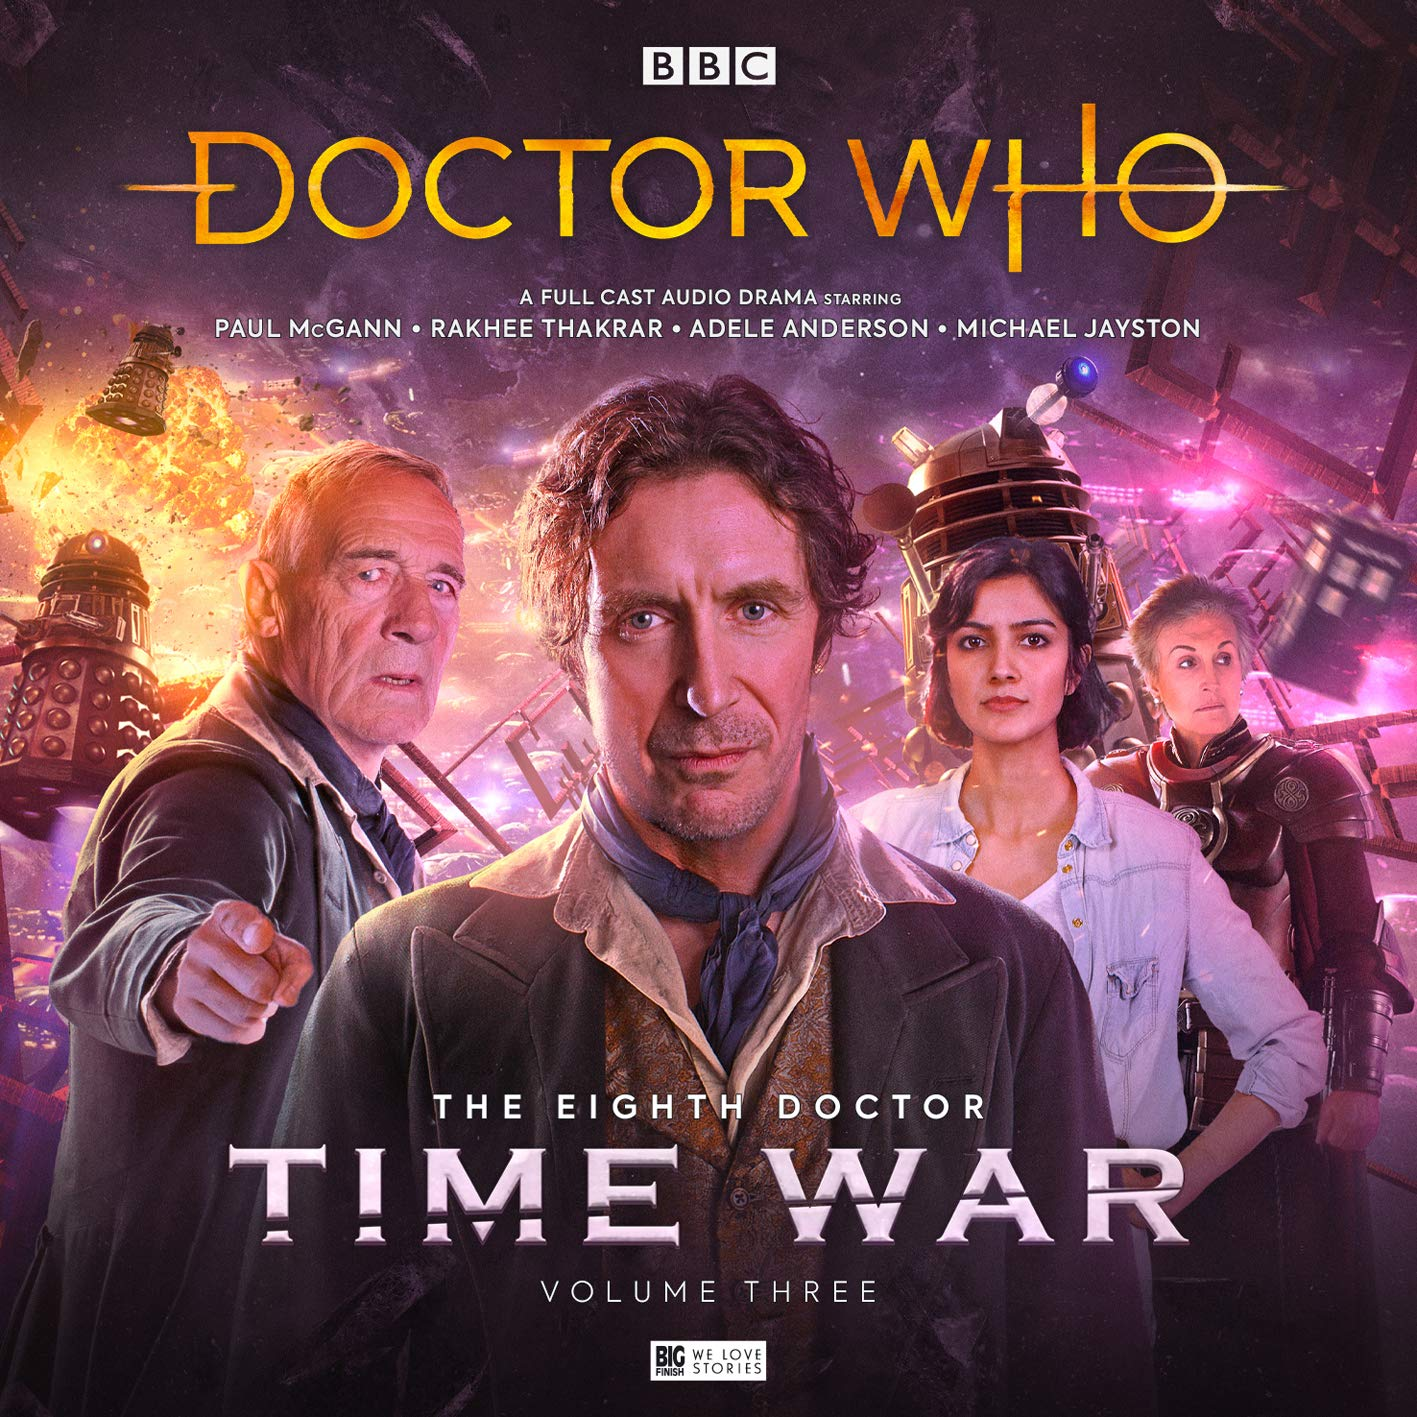 The Eighth Doctor: The Time War Series 3 (Doctor Who - The